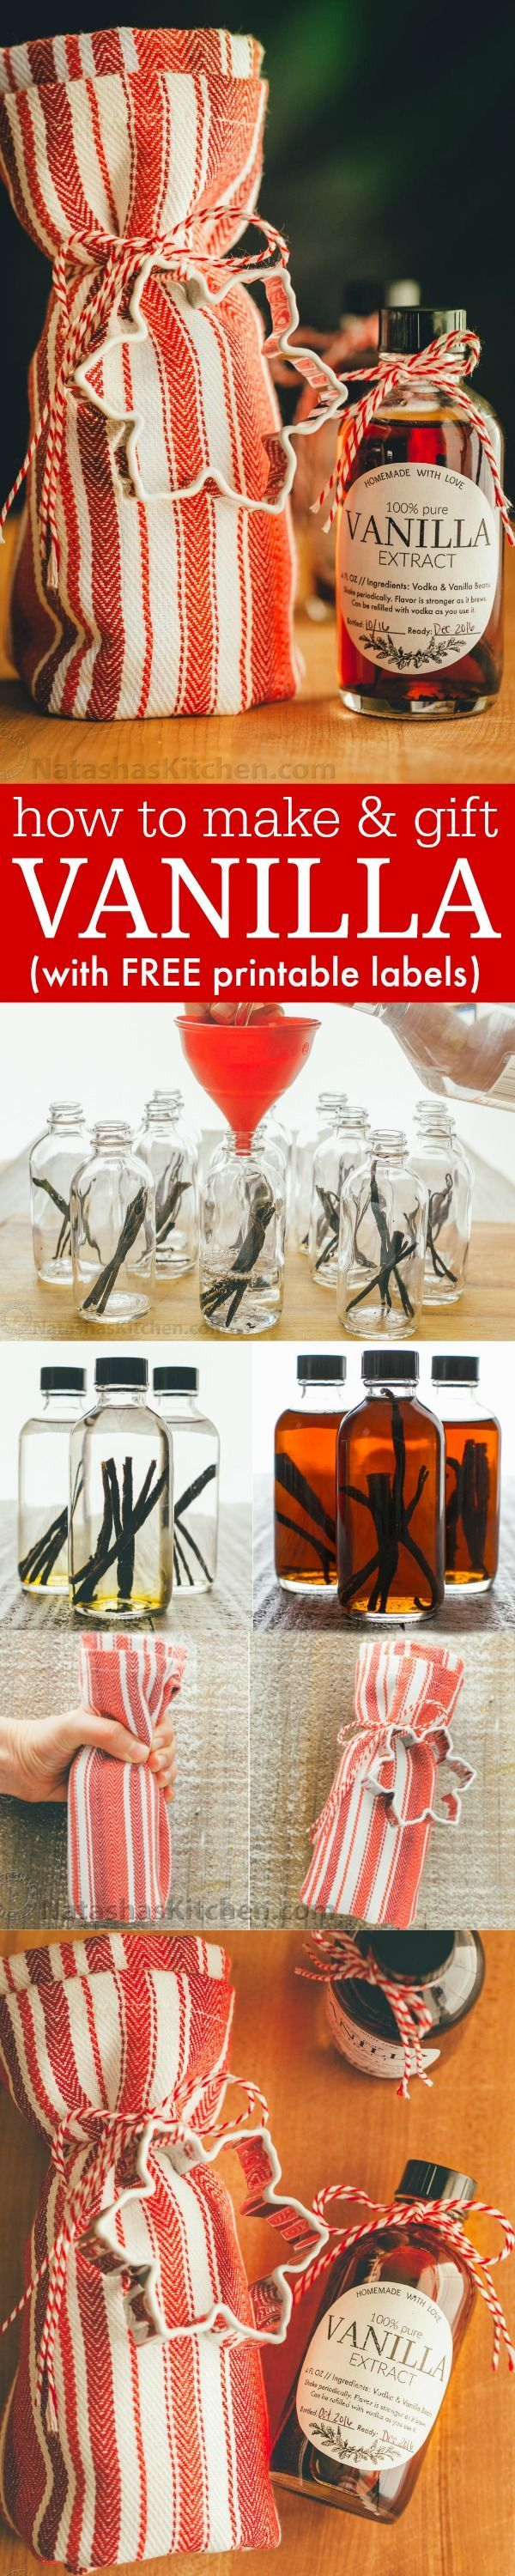 Vanilla Extract - Learn how to make vanilla extract with 2 ingredients! Homemade vanilla extract will be your secret ingredient for baking. The best vanilla extract recipe!